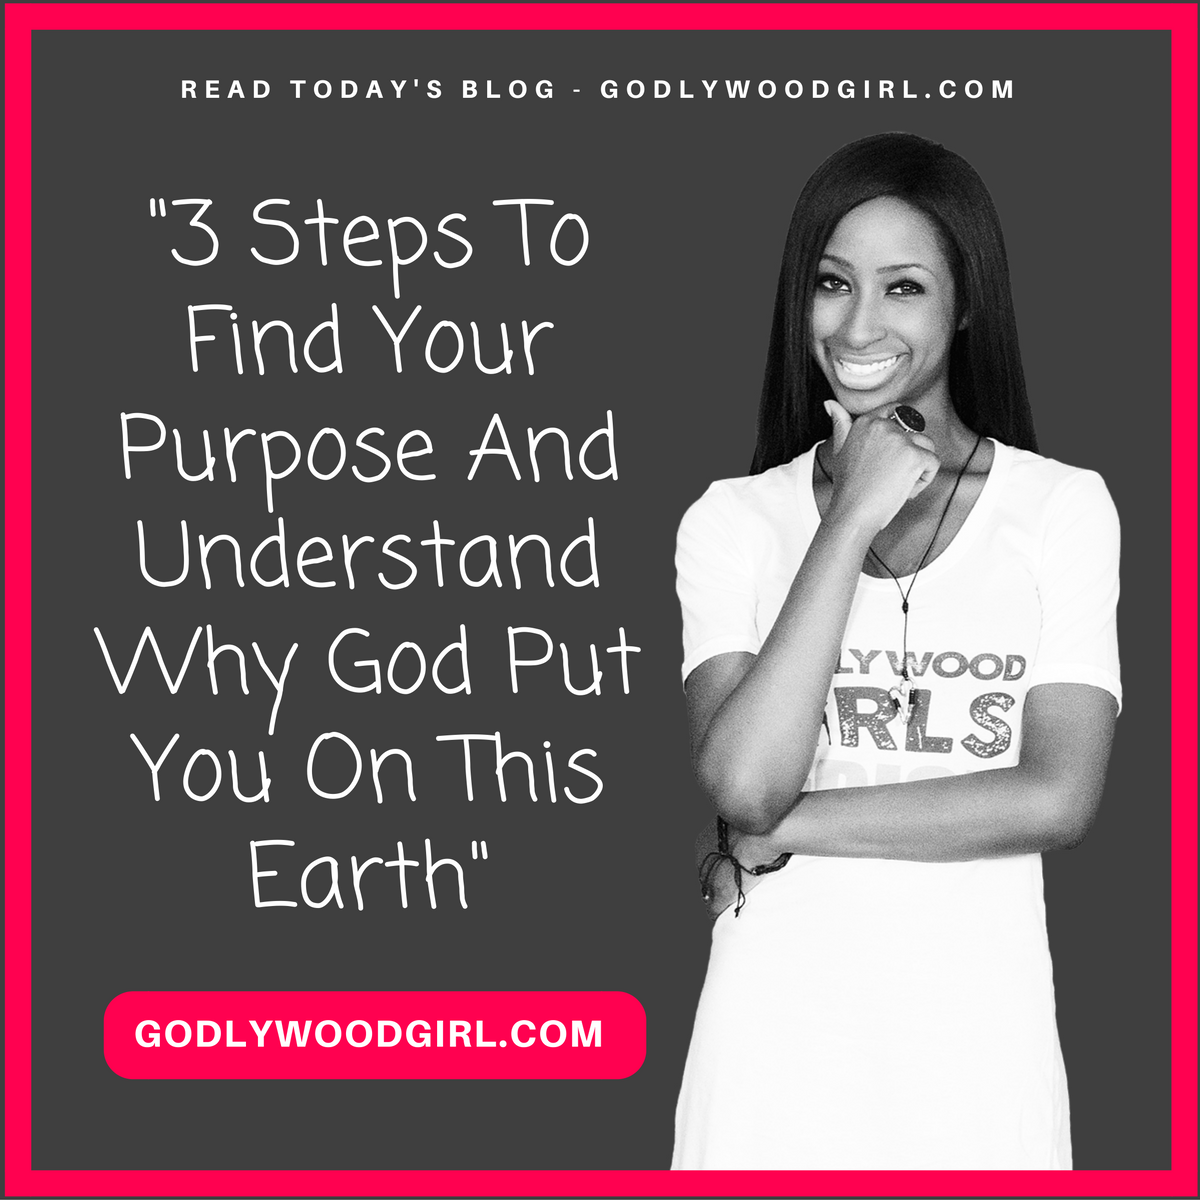 3 Steps To Find Your Purpose And Understand Why God Put You On This Earth